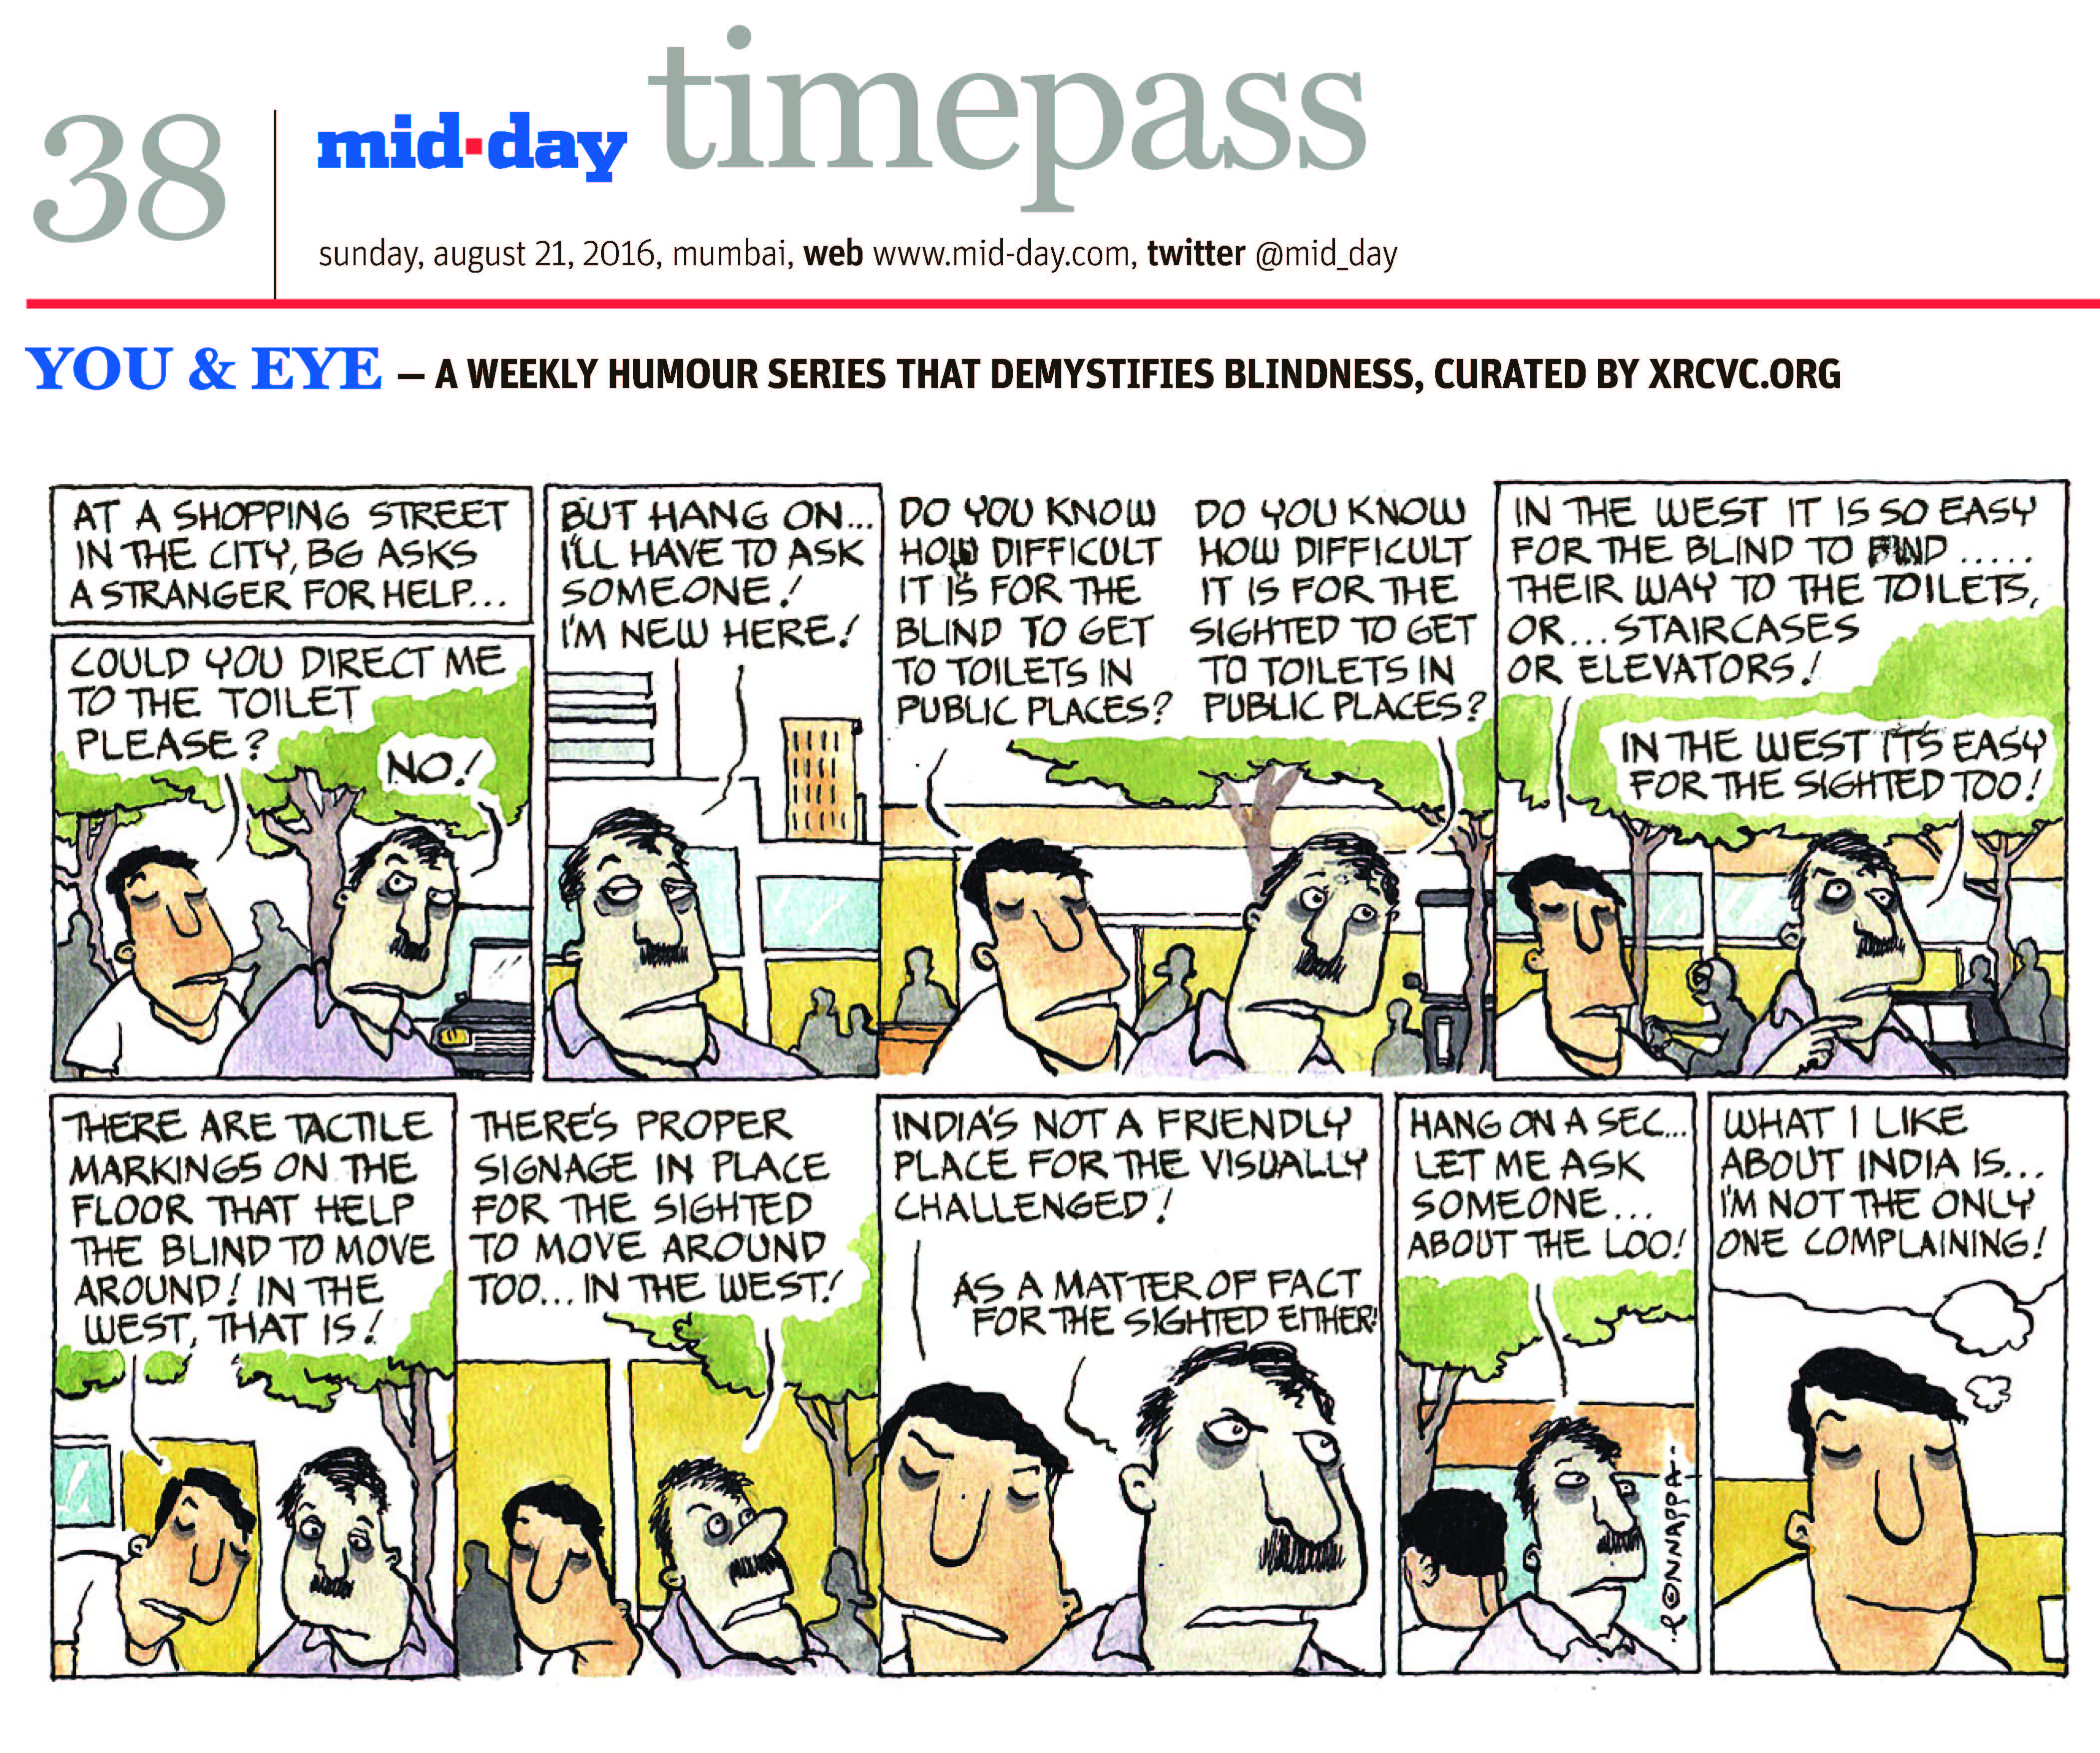 Page 38 mid-day timepass, sunday, aug 21, 2016, mumbai, web: www.mid-day.com, twitter @mid_day YOU & EYE – A WEEKLY HUMOUR SERIES THAT DEMYSTIFIES BLINDNESS, CURATED BY XRCVC.ORG Image description: A cartoon strip with 9 frames… Frame 1: (The visually impaired man – BG – standing near a sighted man outdoors; trees, people and a vehicle are in the background) At a shopping street in the city, BG asks a stranger for help… BG: Could you direct me to the toilet please? Sighted Man: No! Frame 2: (A close-up of the sighted man; trees, buildings are in the background) Sighted Man: But hang on… I'll have to ask someone! I'm new here! Frame 3: (BG and the sighted man on the street) BG: